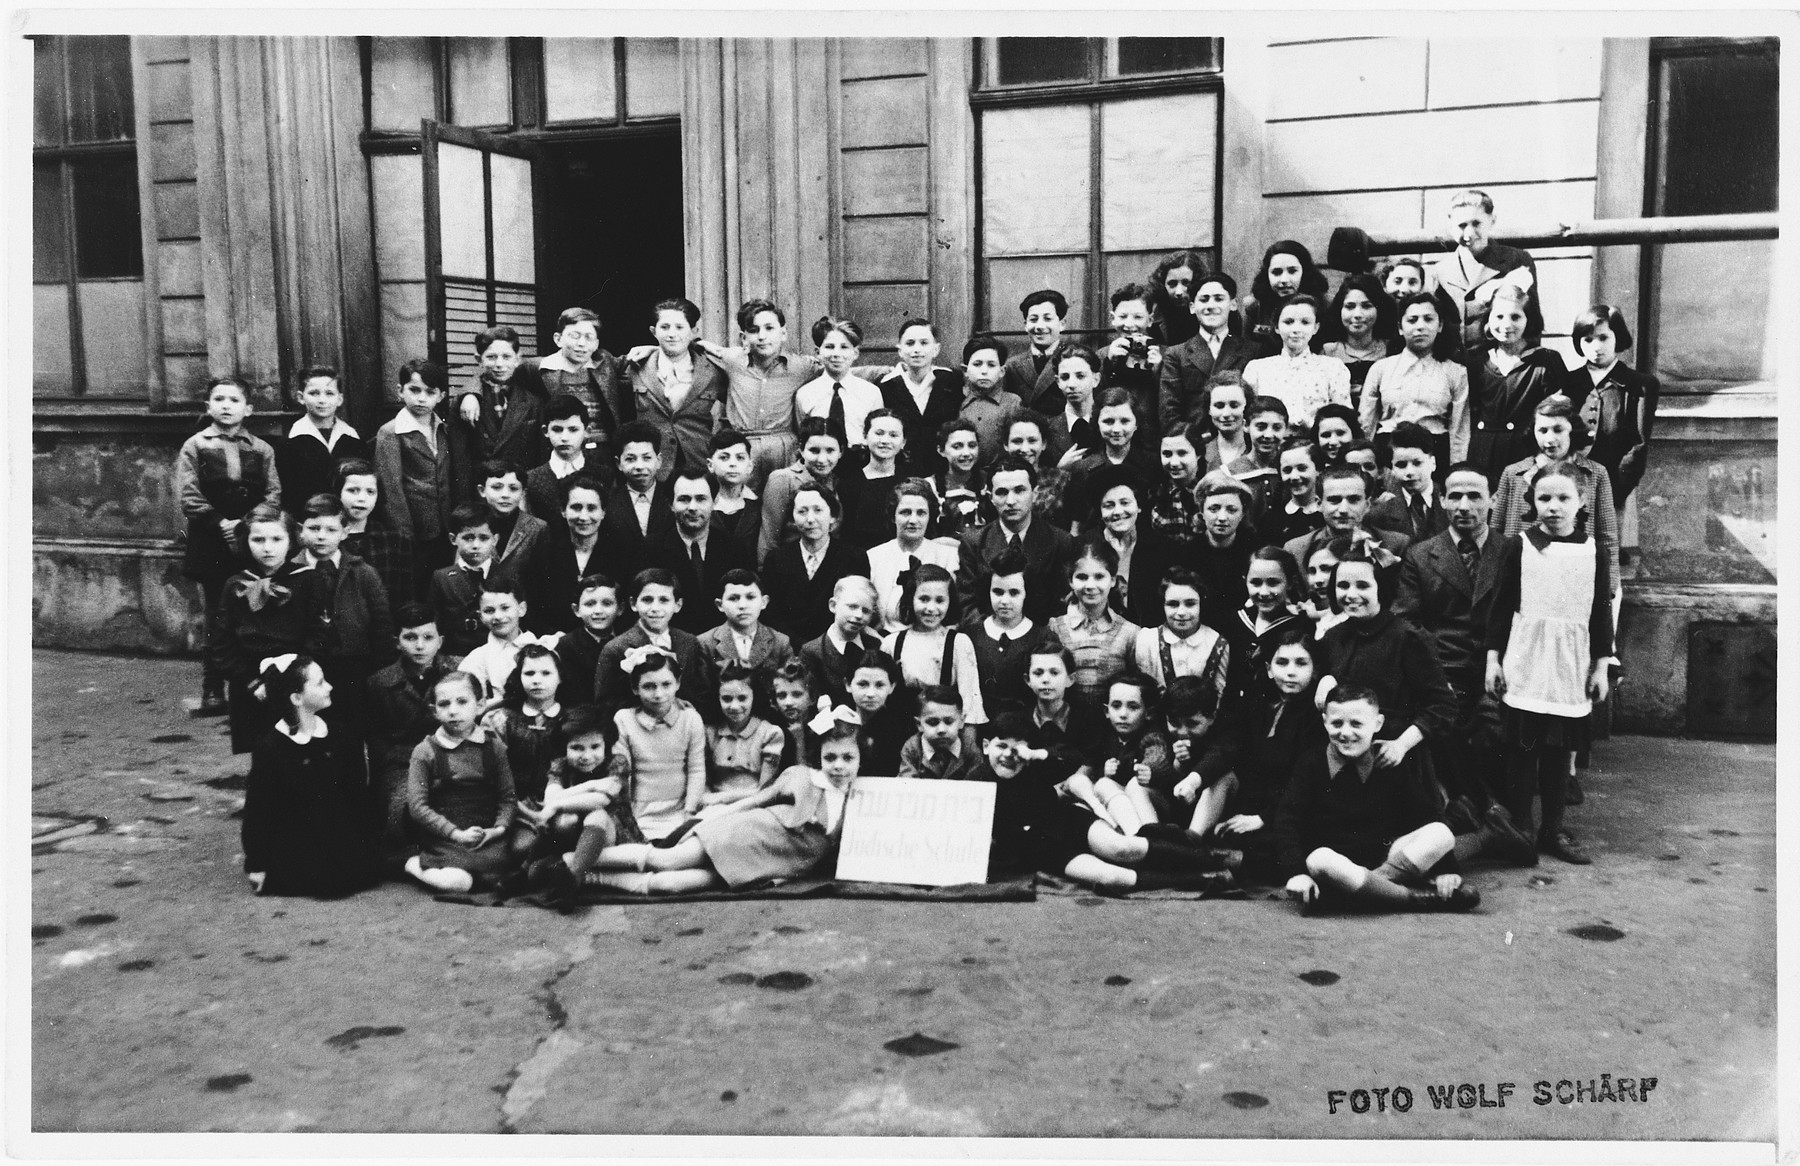 Group portrait of the students in the Hebrew school in Vienna.